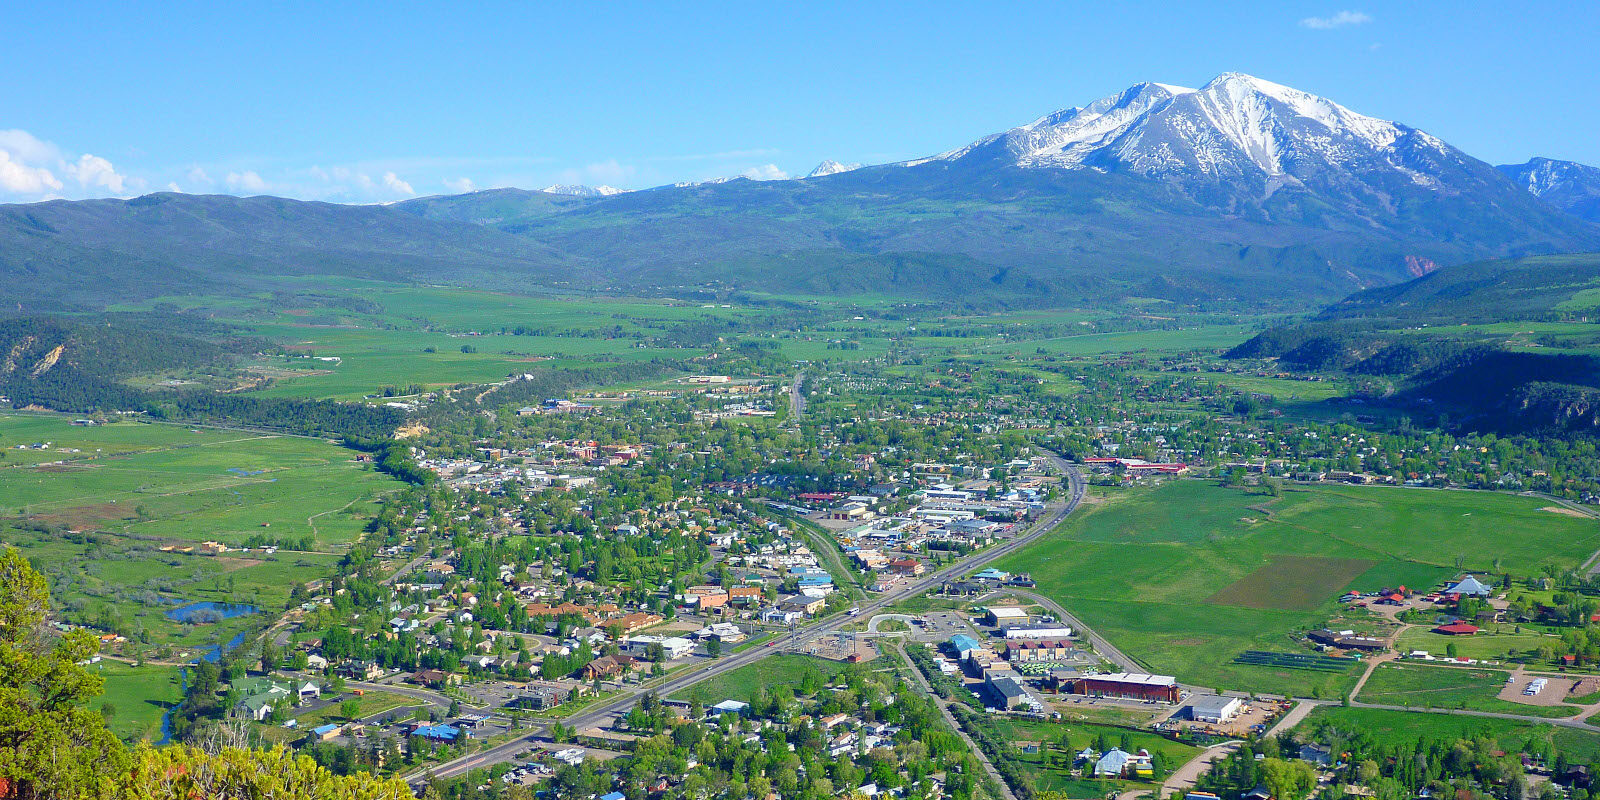 Town of Carbondale, CO